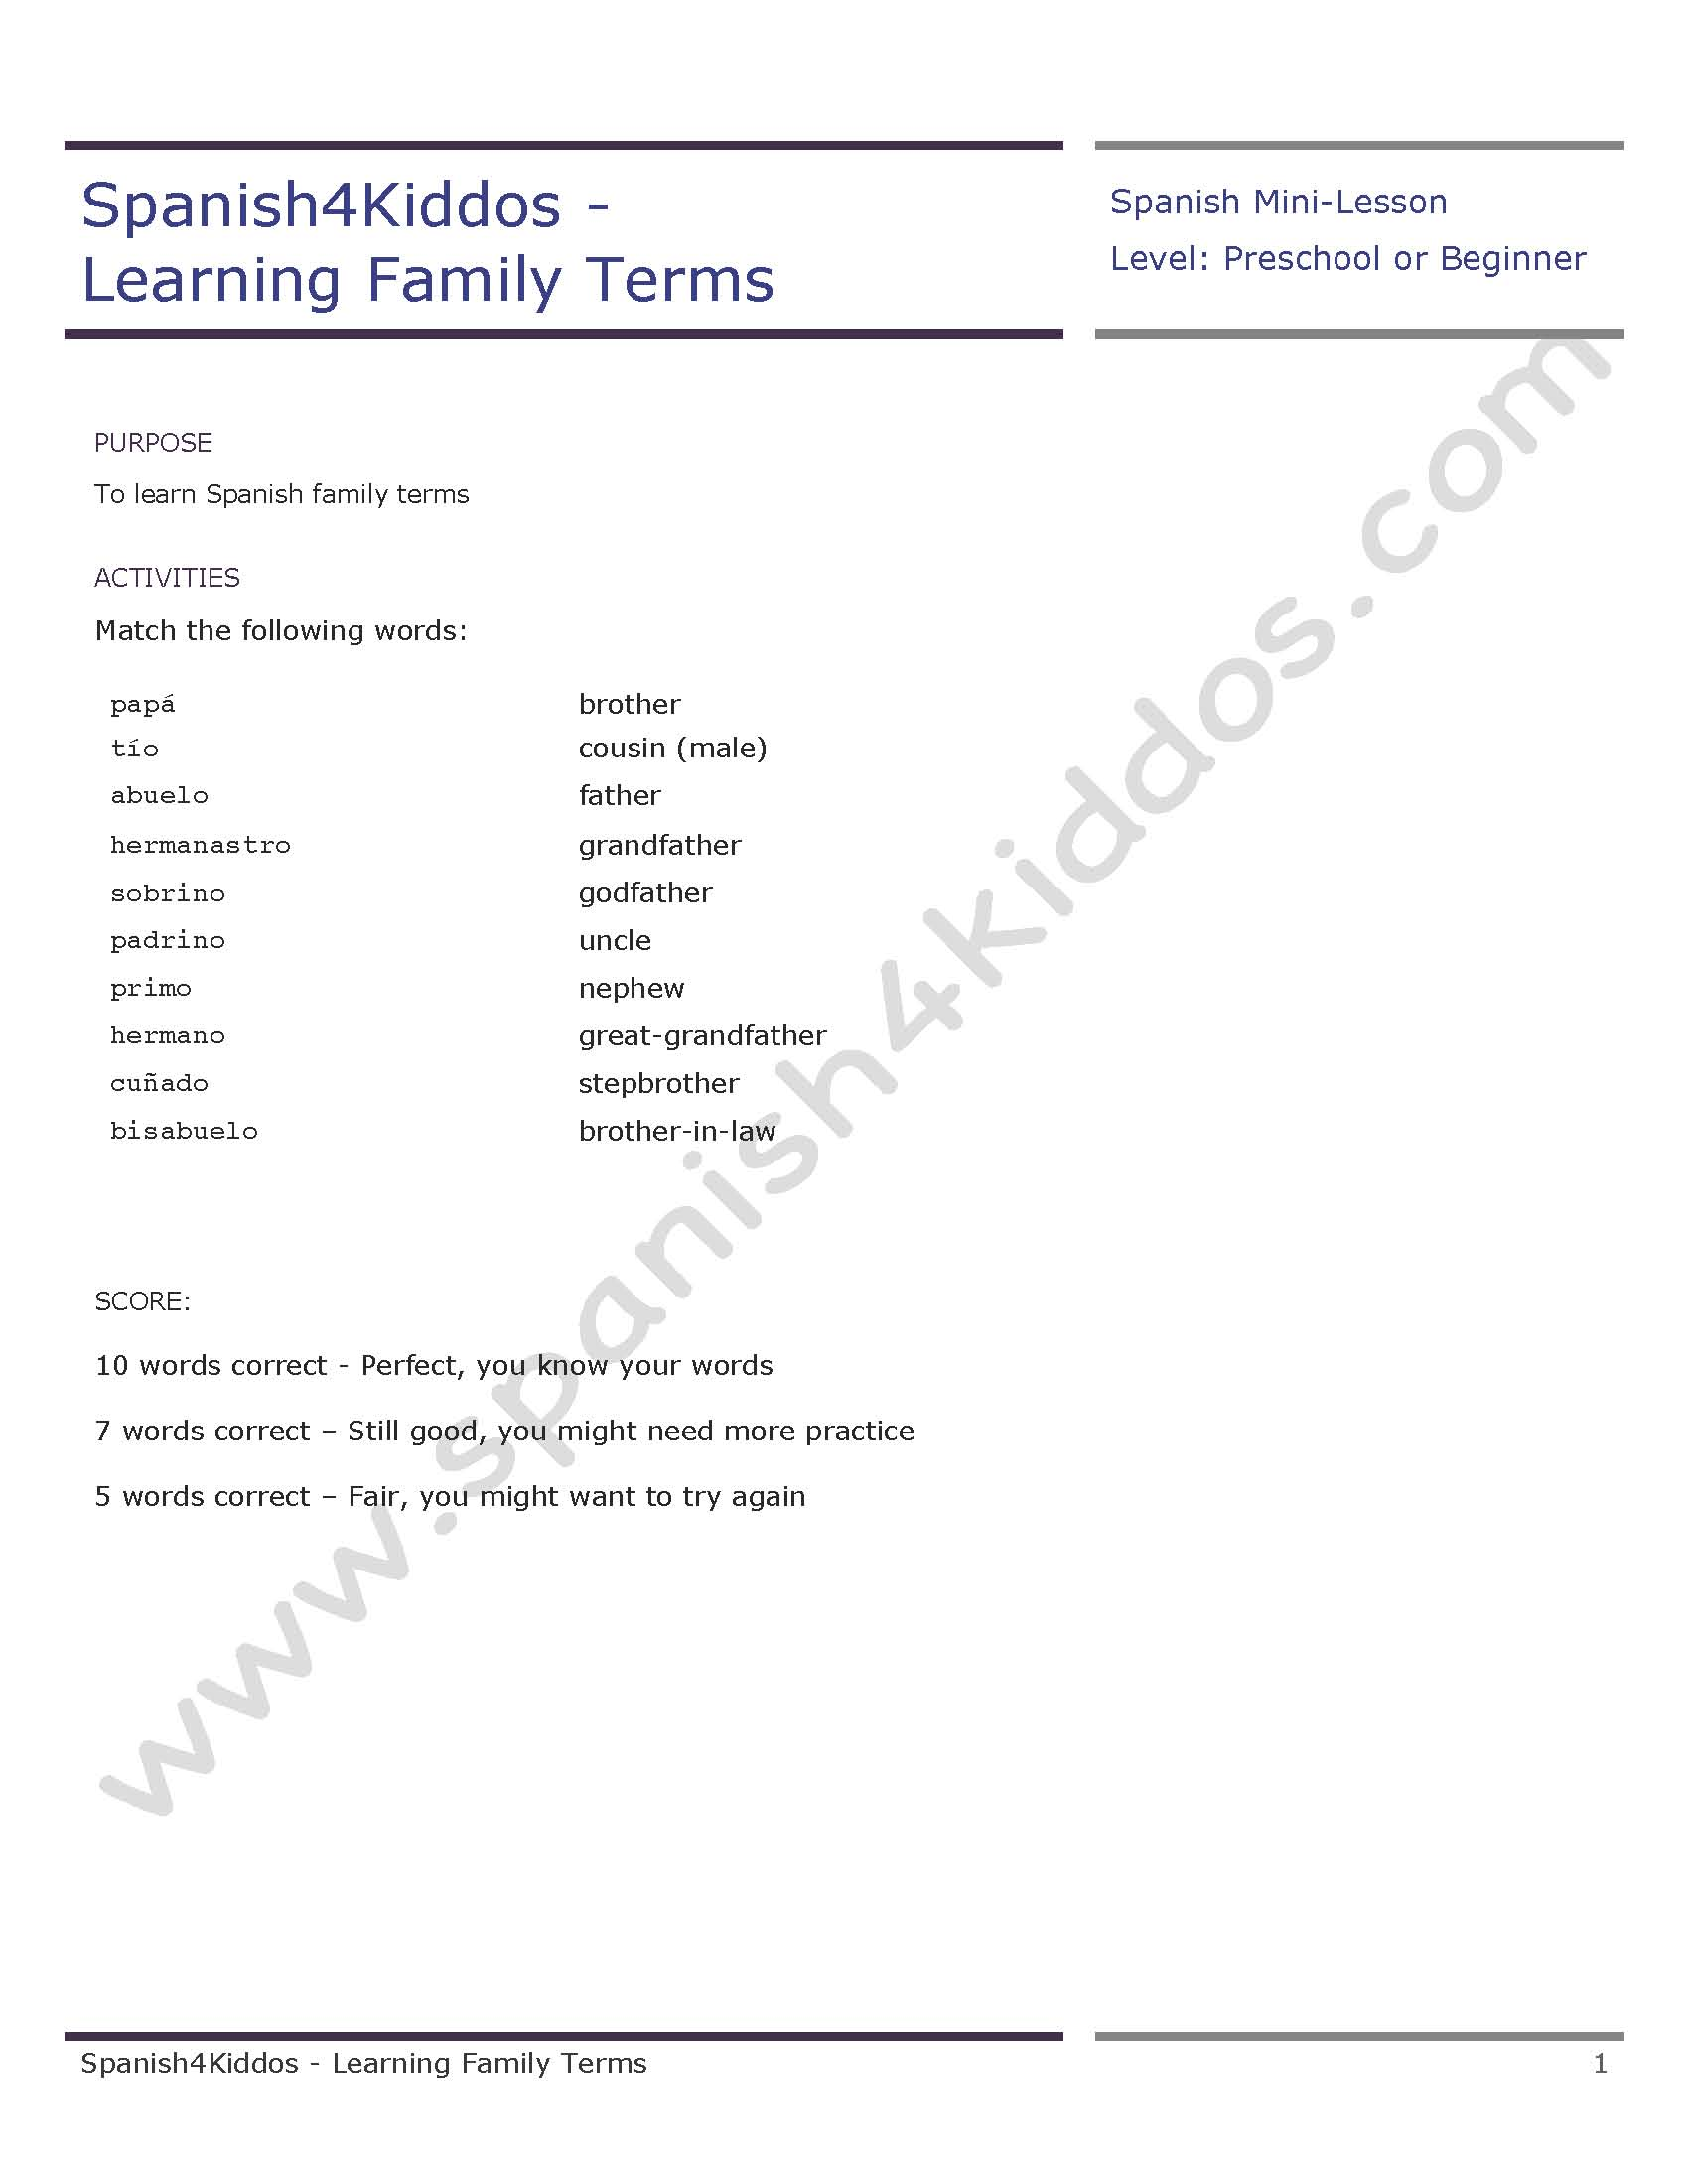 Learning Family Terms